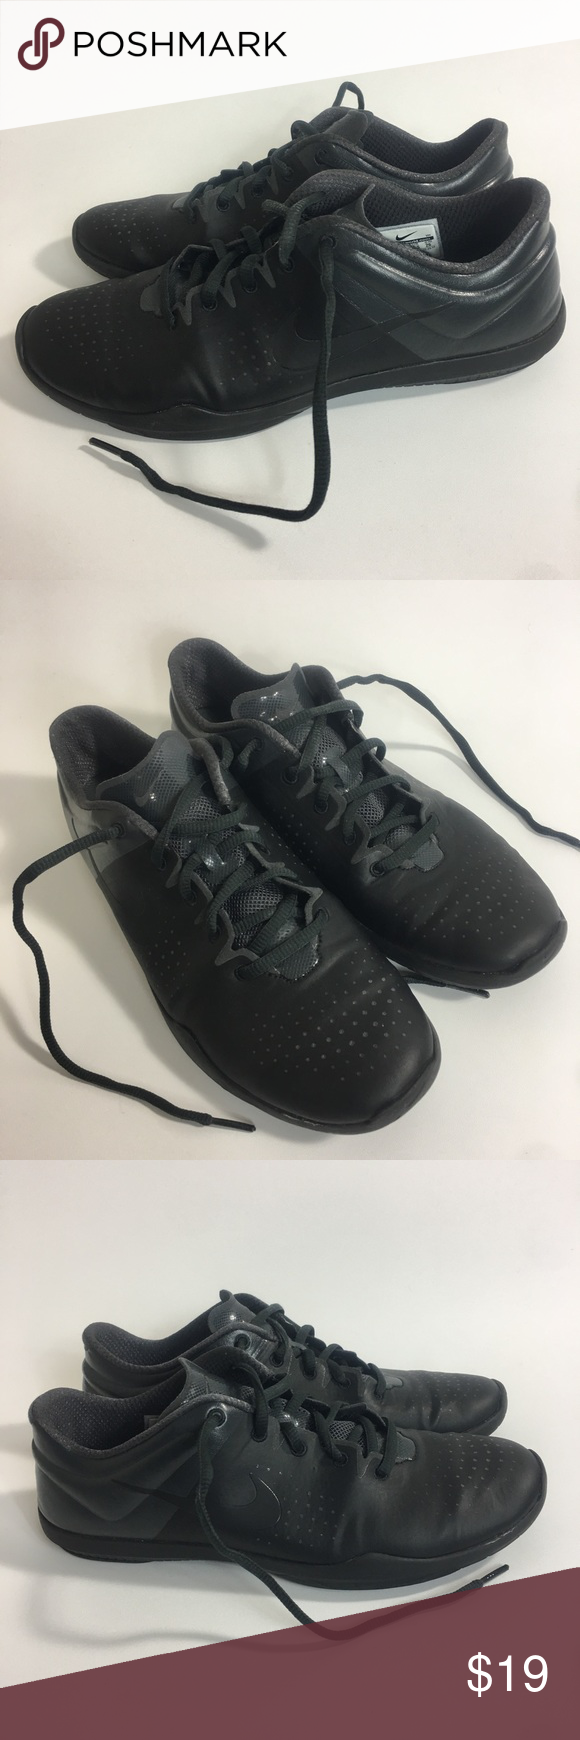 c1ce45db3a716 Nike Studio Trainer Athletic Dance Cheer Shoes Nike 616057-002 ...